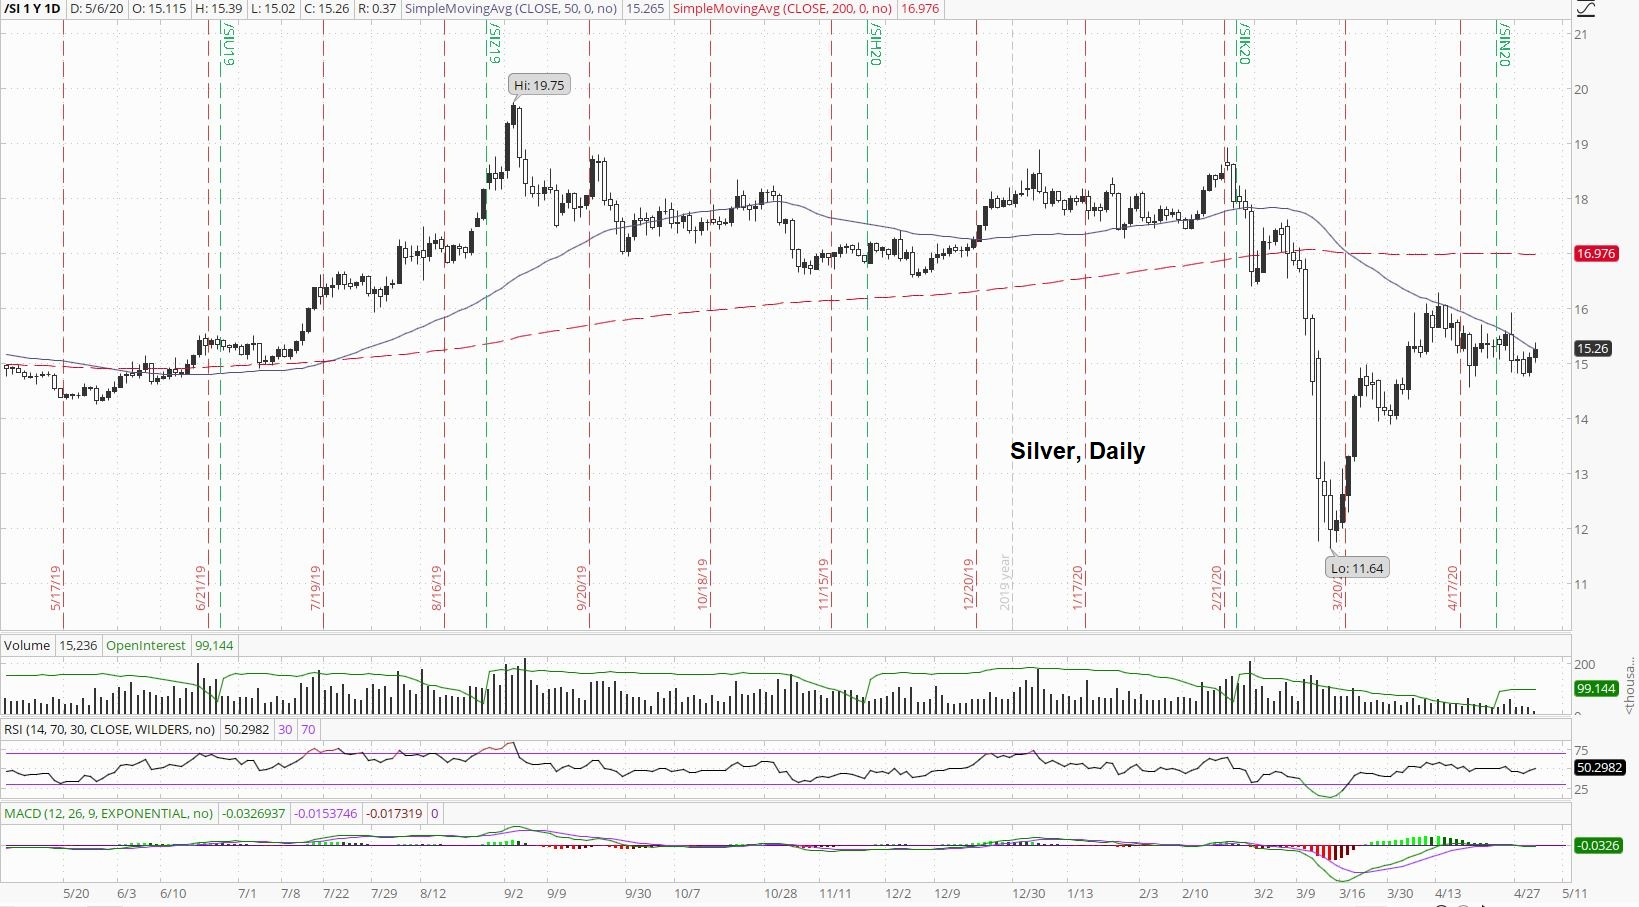 Silver Daily Price